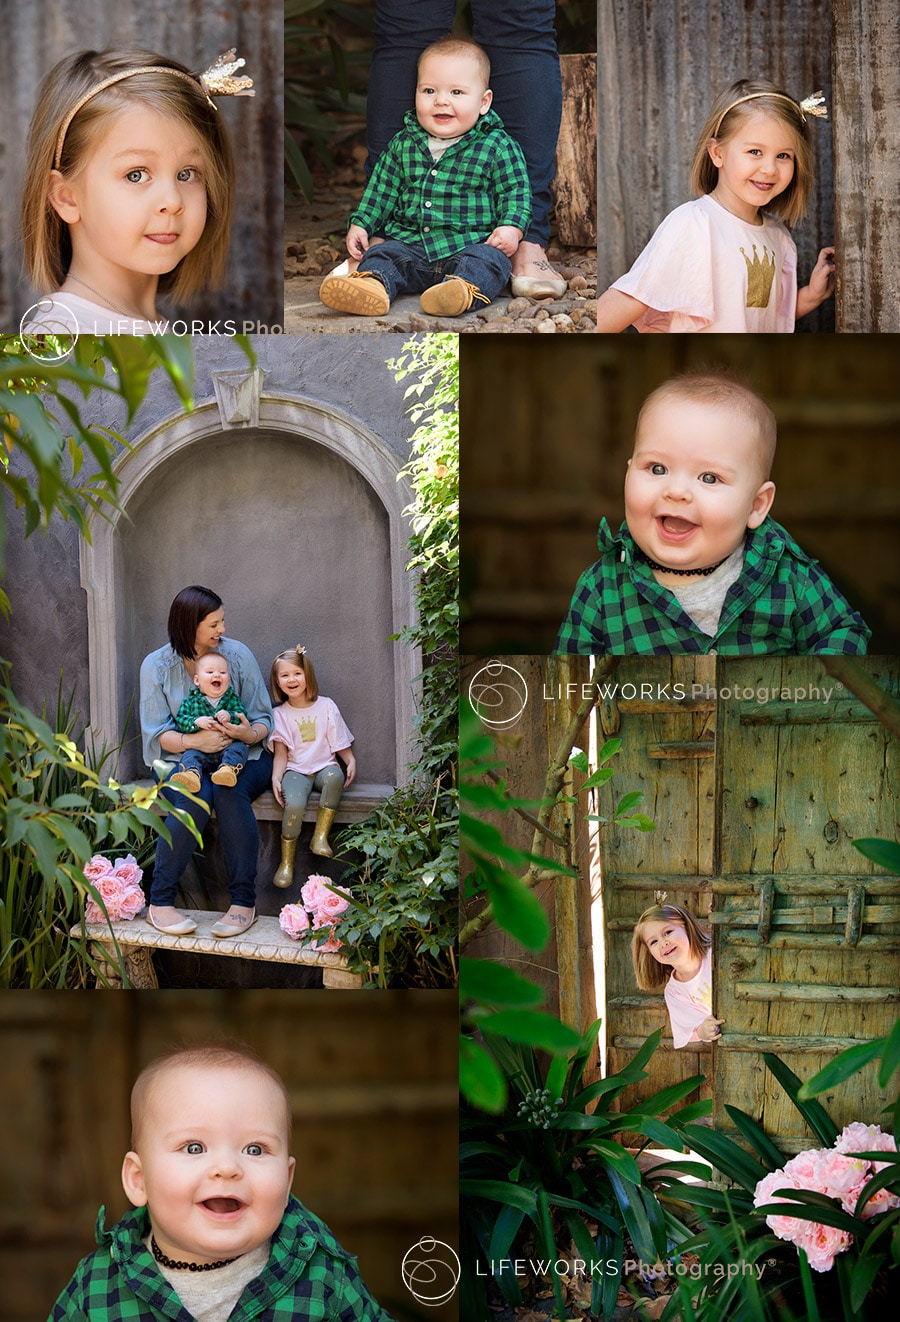 children's photography - outdoor photo shoot